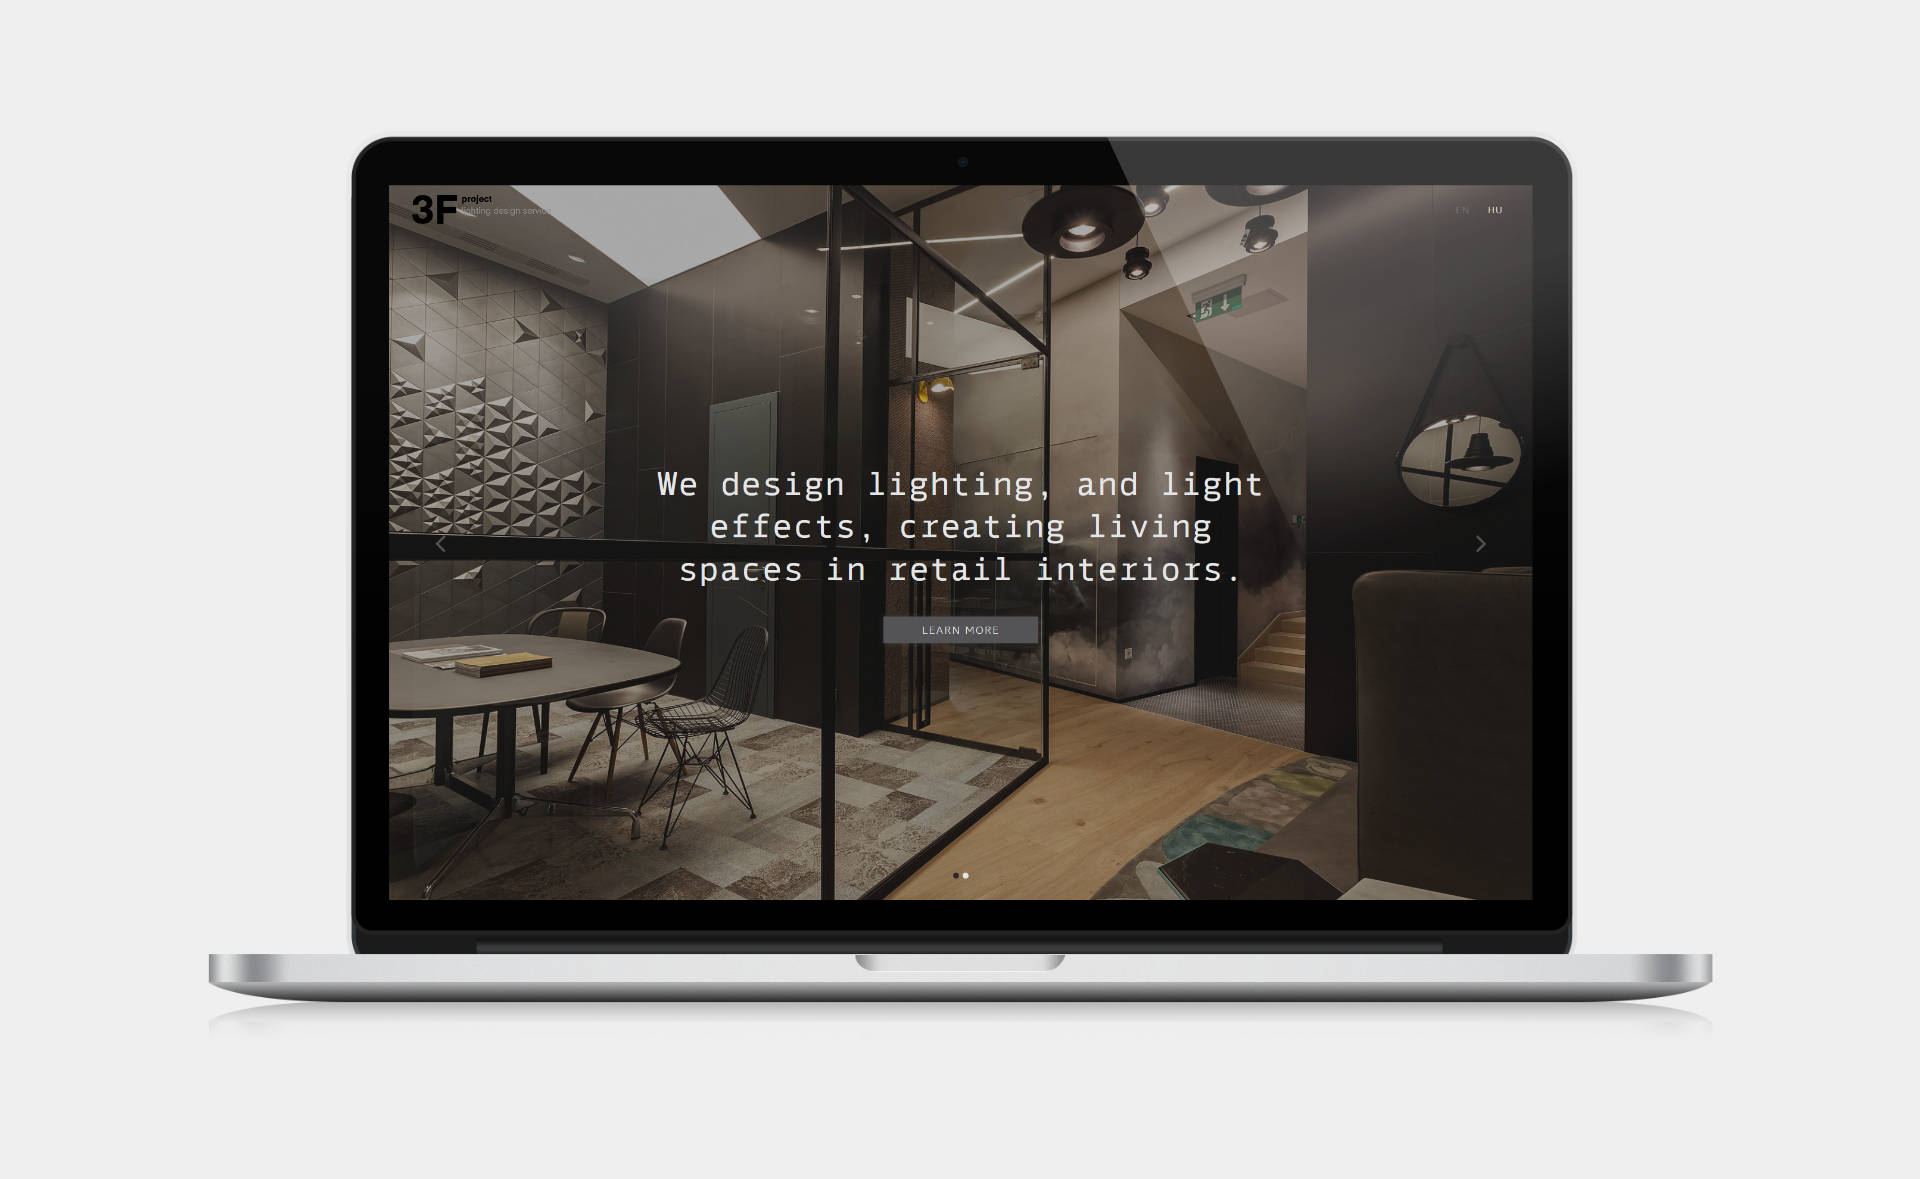 Landing page design, and bespoke WordPress website building for 3F Project's retail lighting service home page on desktop